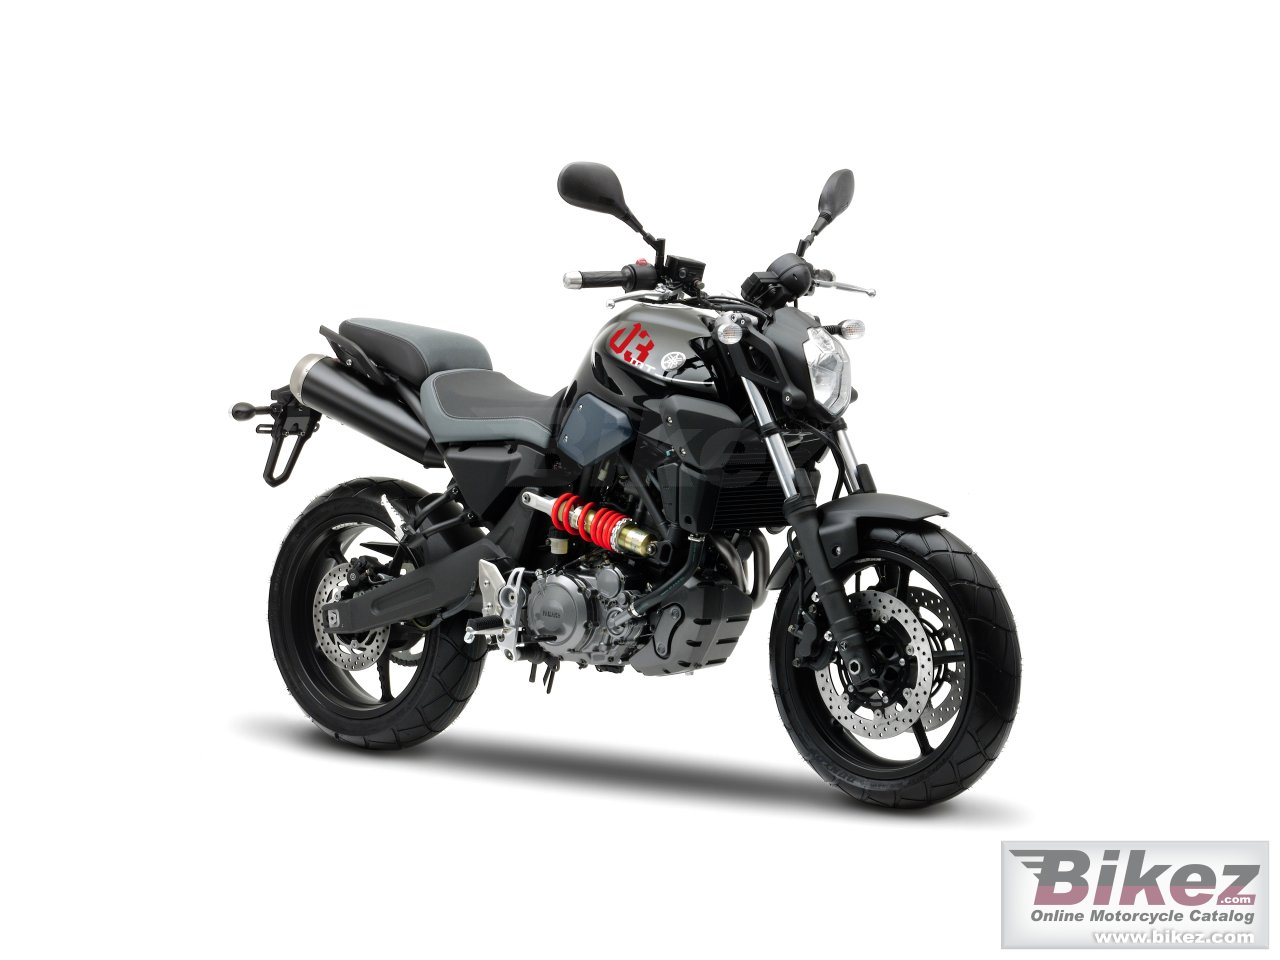 Big Yamaha mt-03 picture and wallpaper from Bikez.com